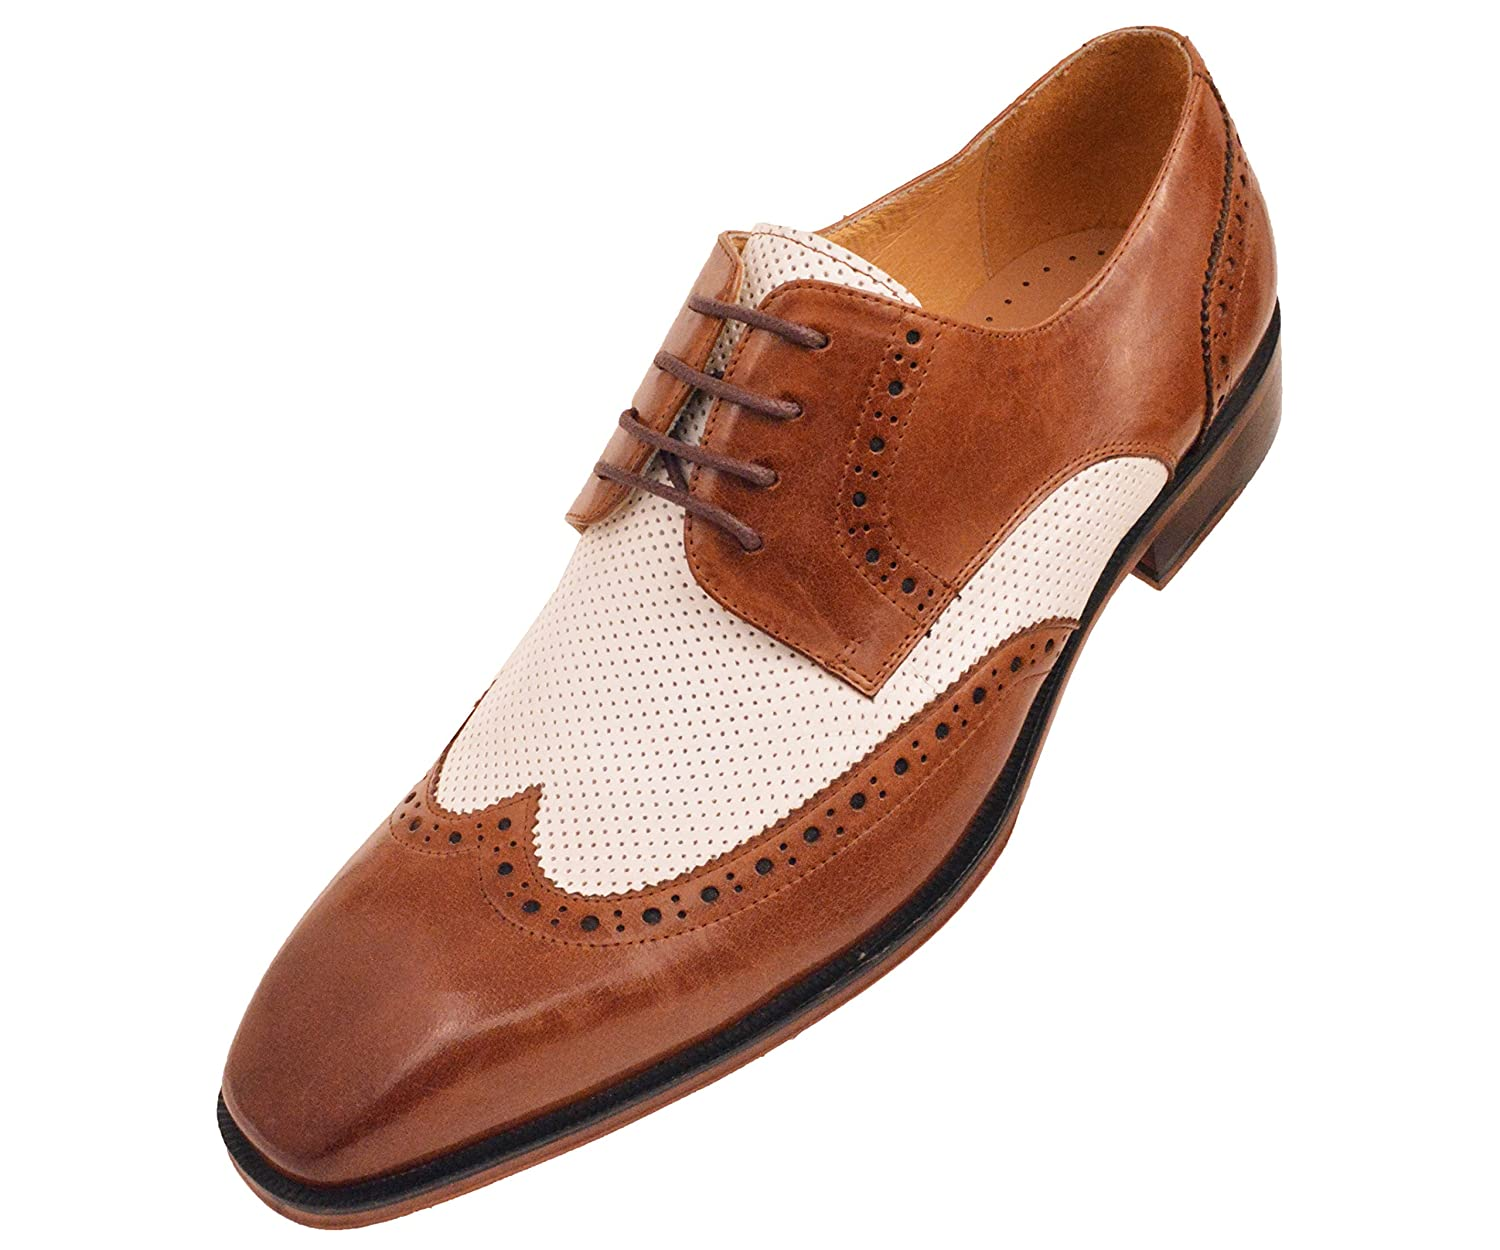 1940s Style Mens Shoes Asher Green Mens Two Tone Cognac Brown / White Genuine Leather Wingtip Oxford Dress Shoe: AG3027-215 $79.99 AT vintagedancer.com